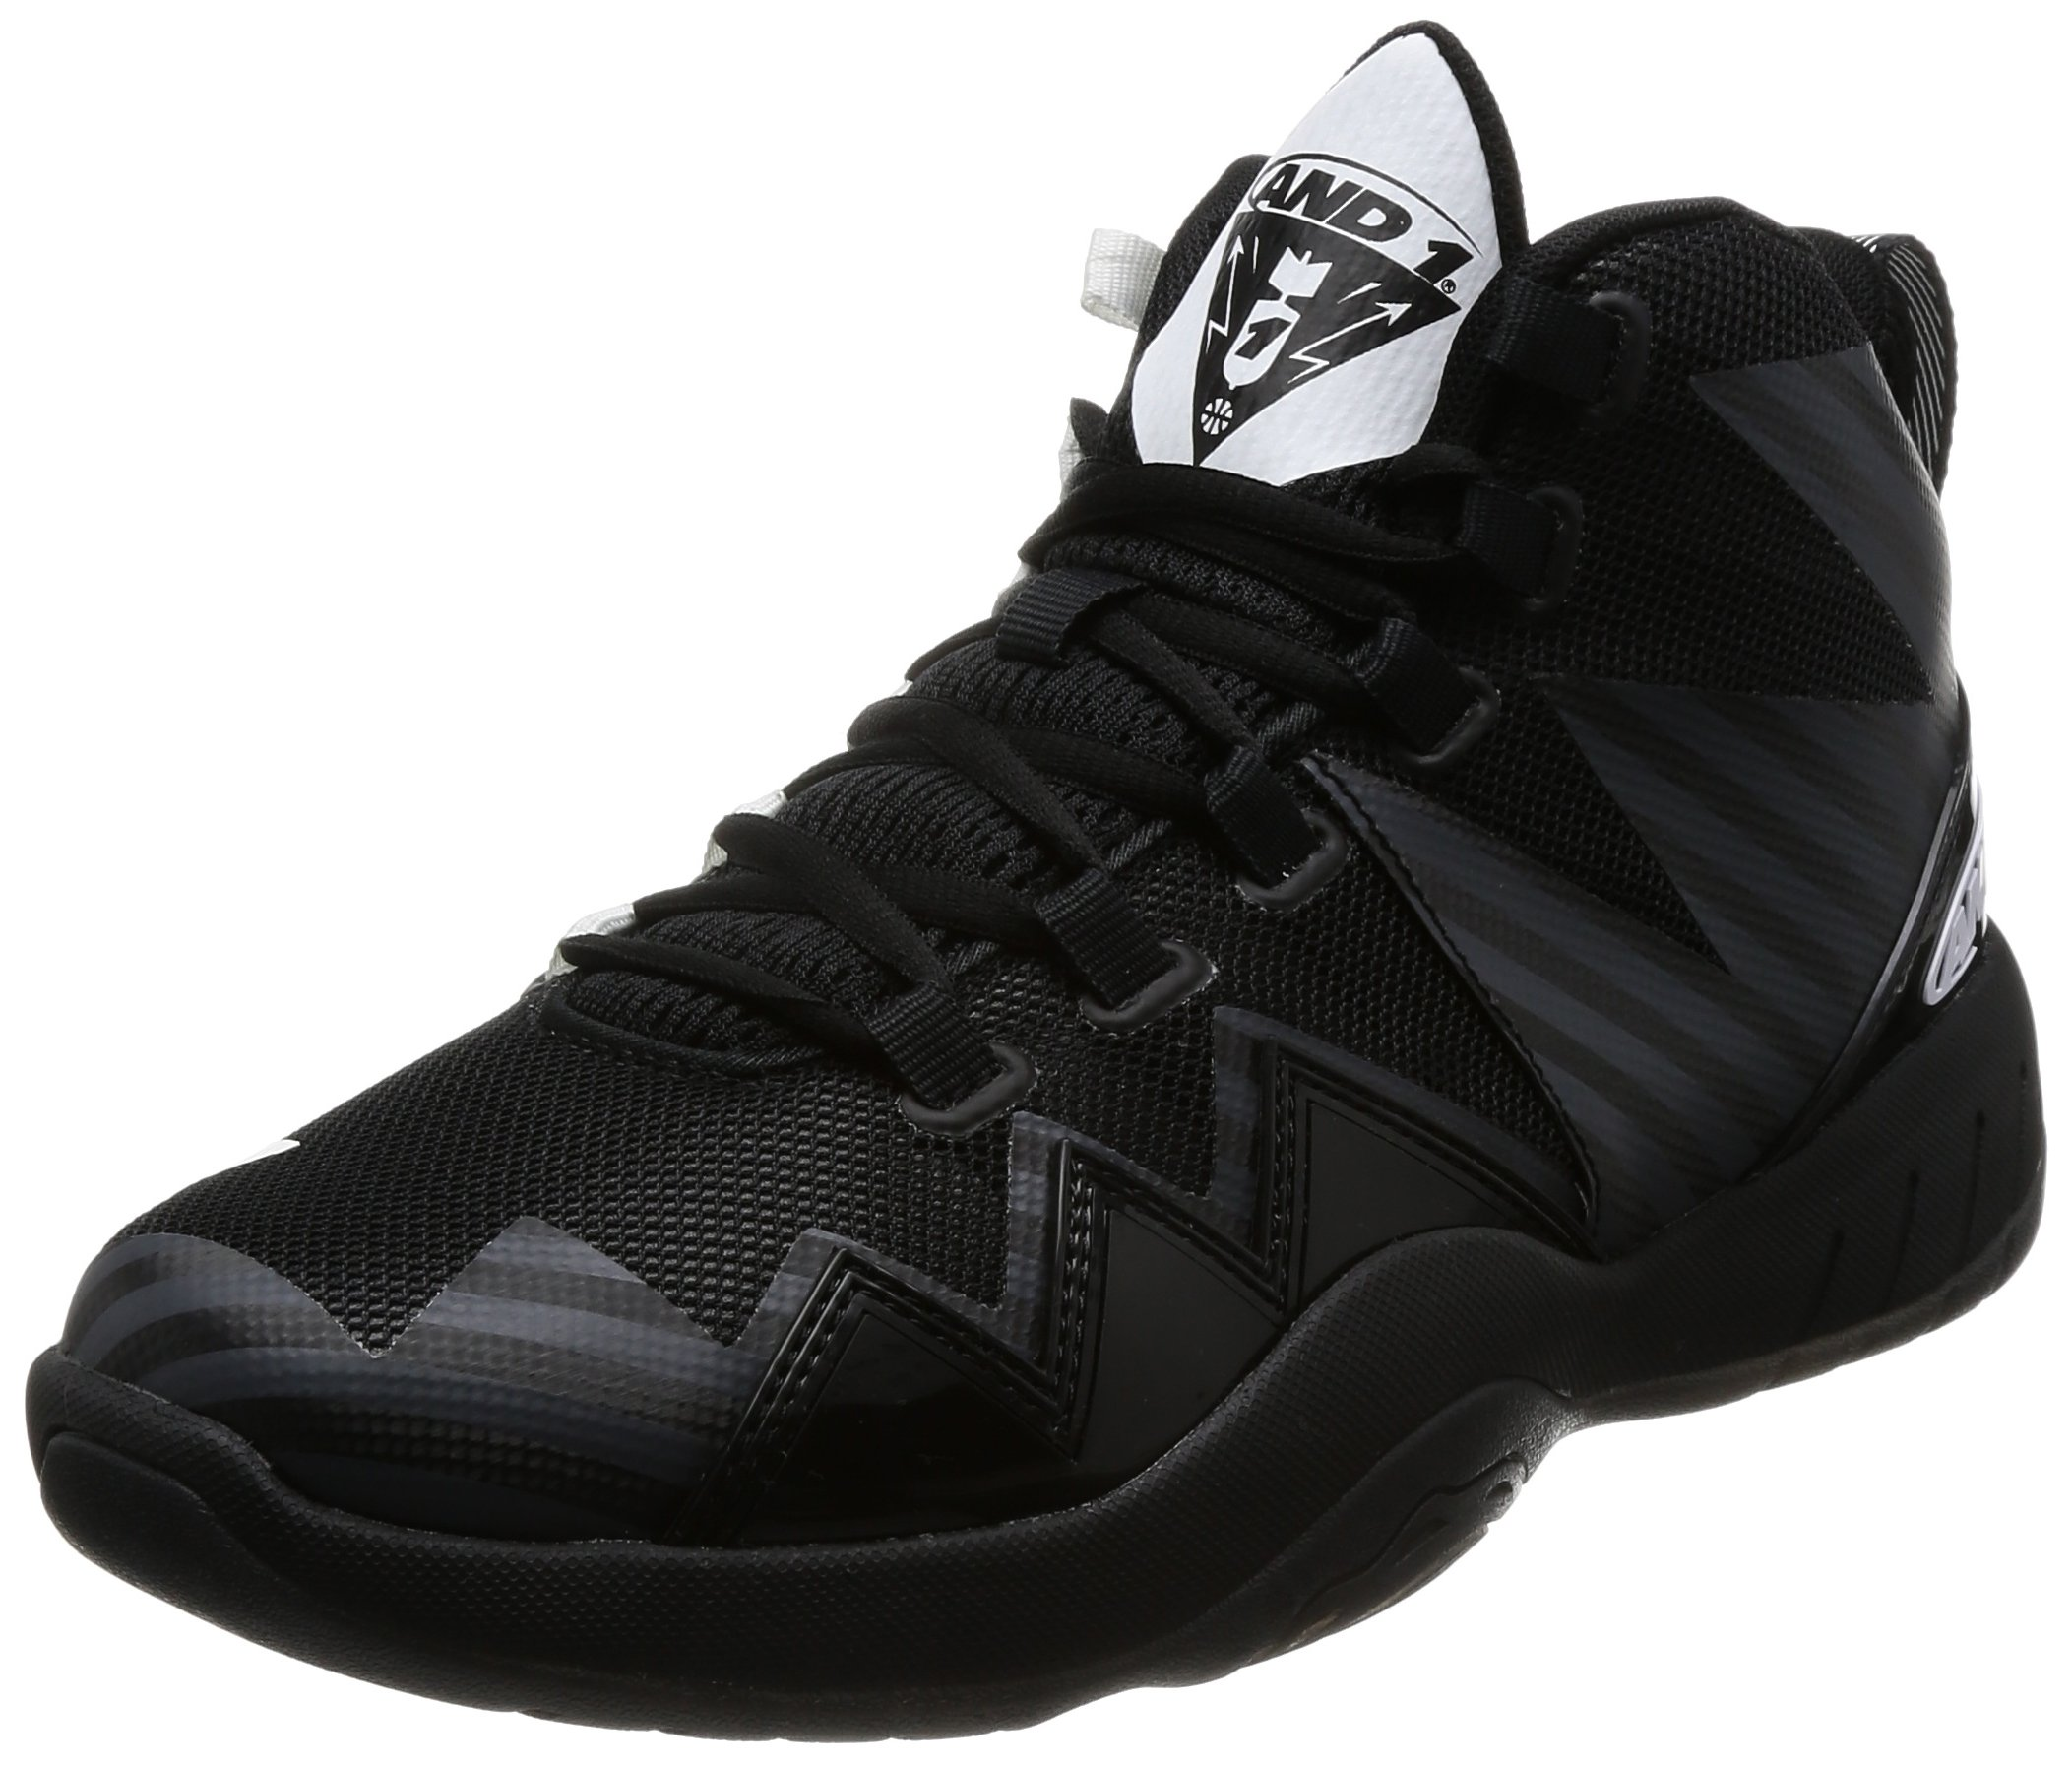 AND1 Mens Athletic Sneakers Black